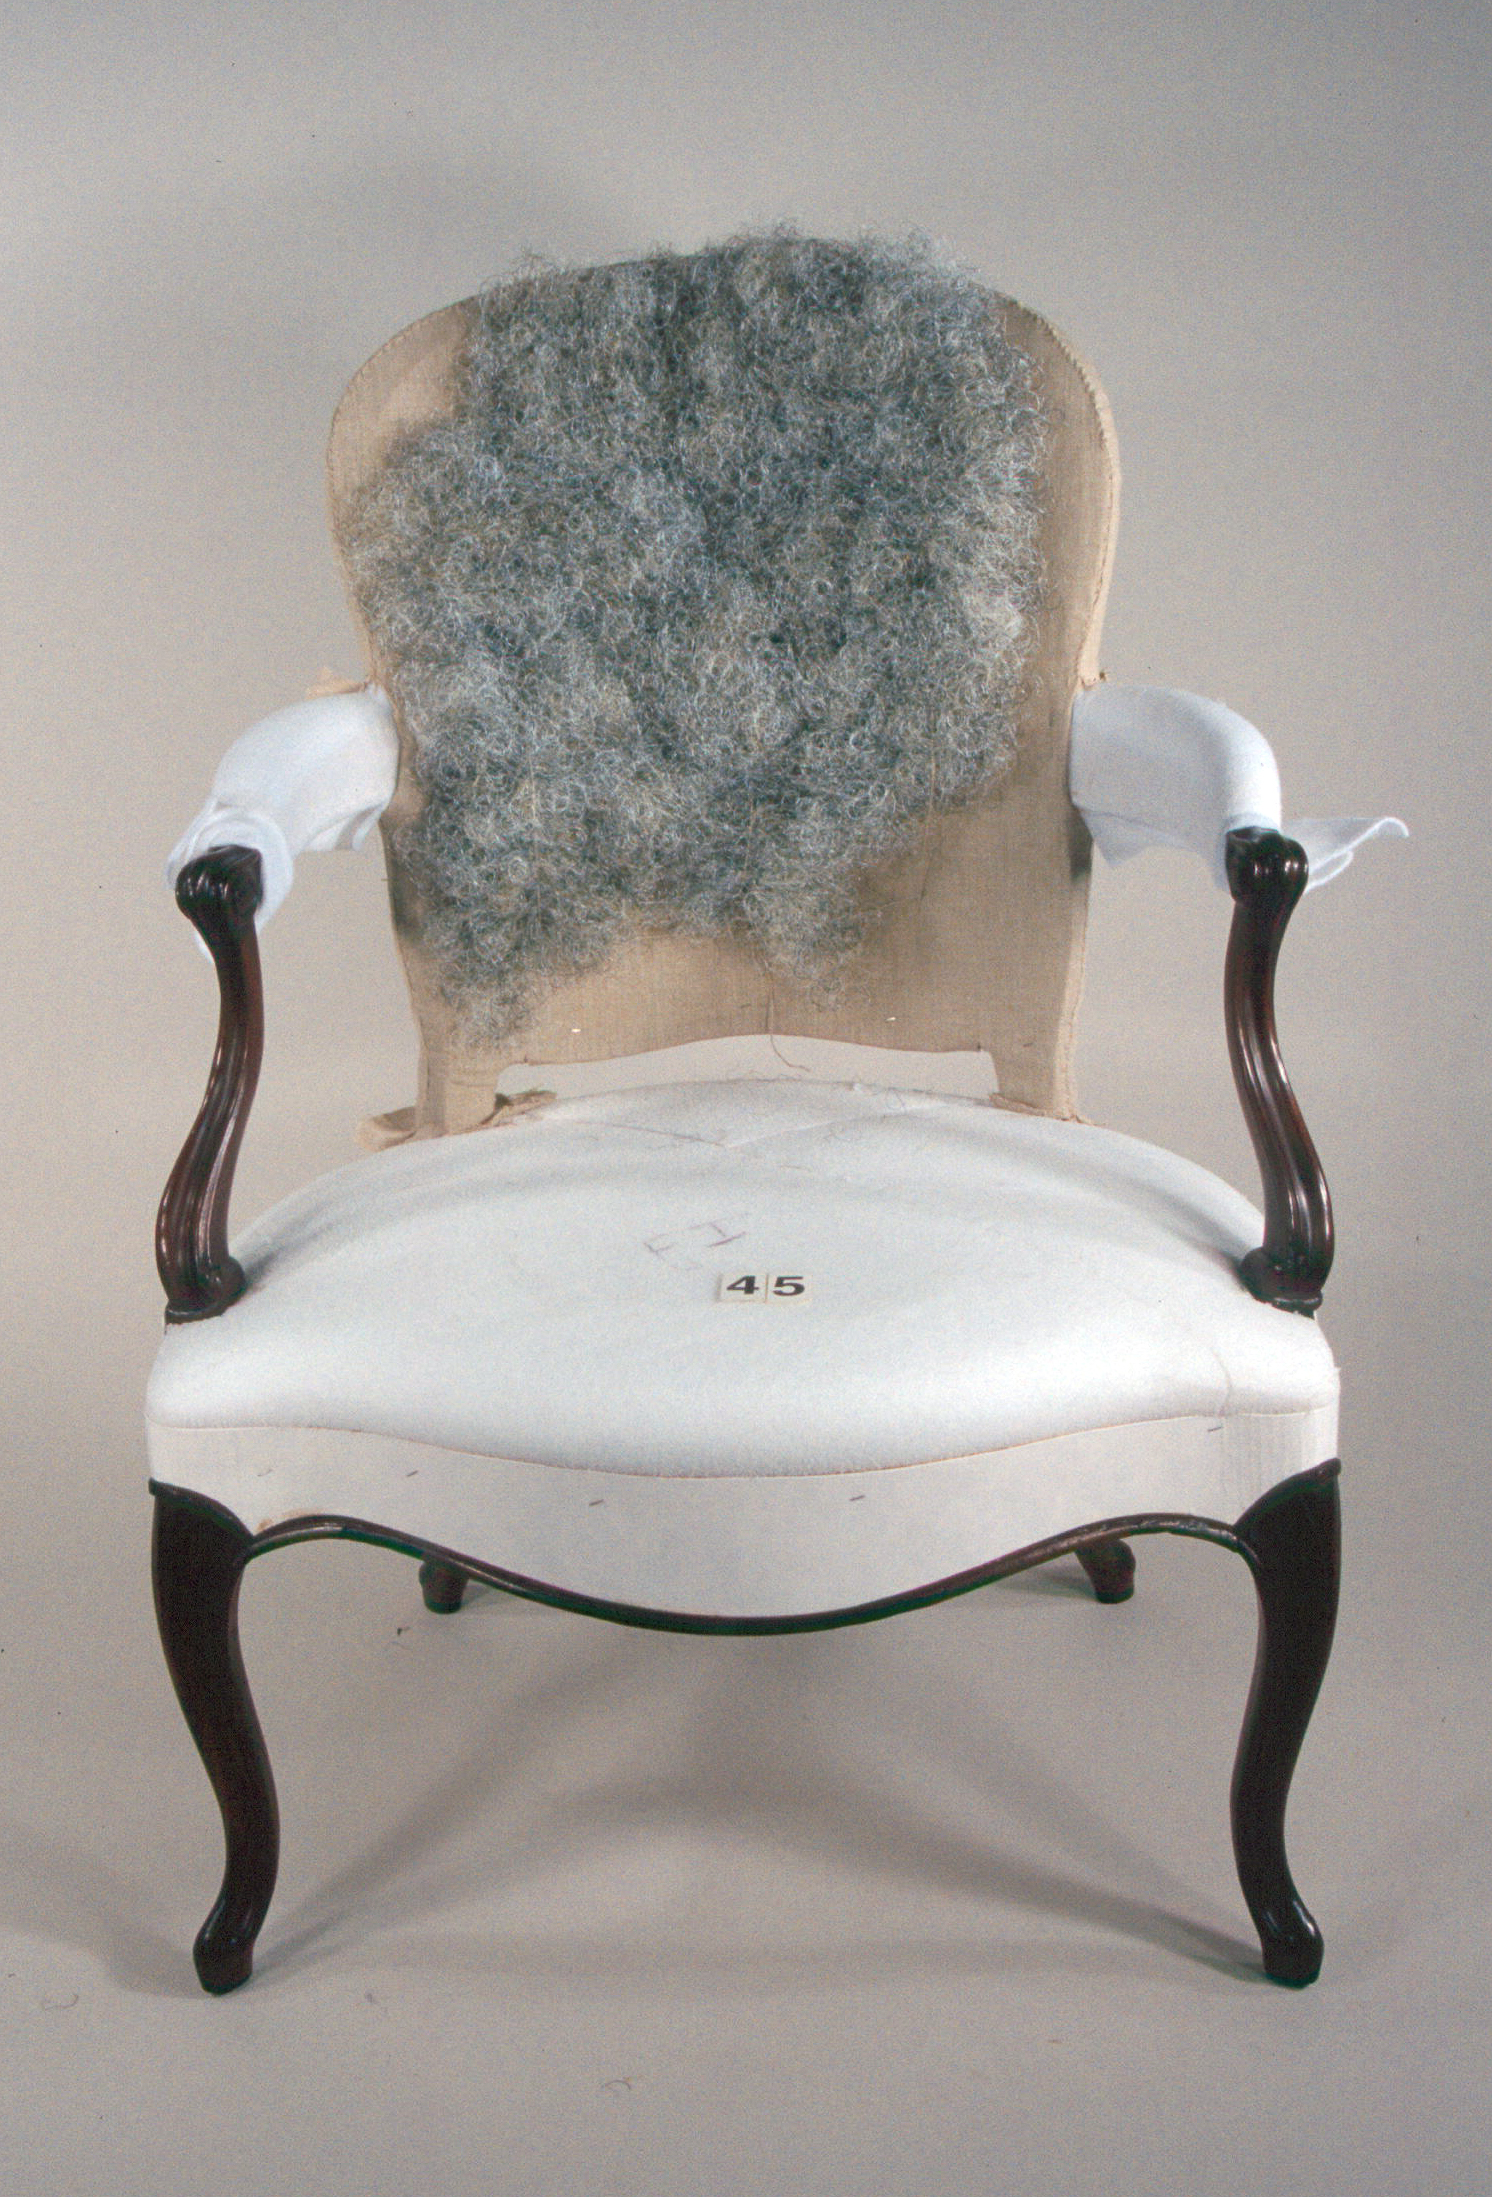 c18th_Cen_Arm_Chair-06-DT-new_under_upholstery